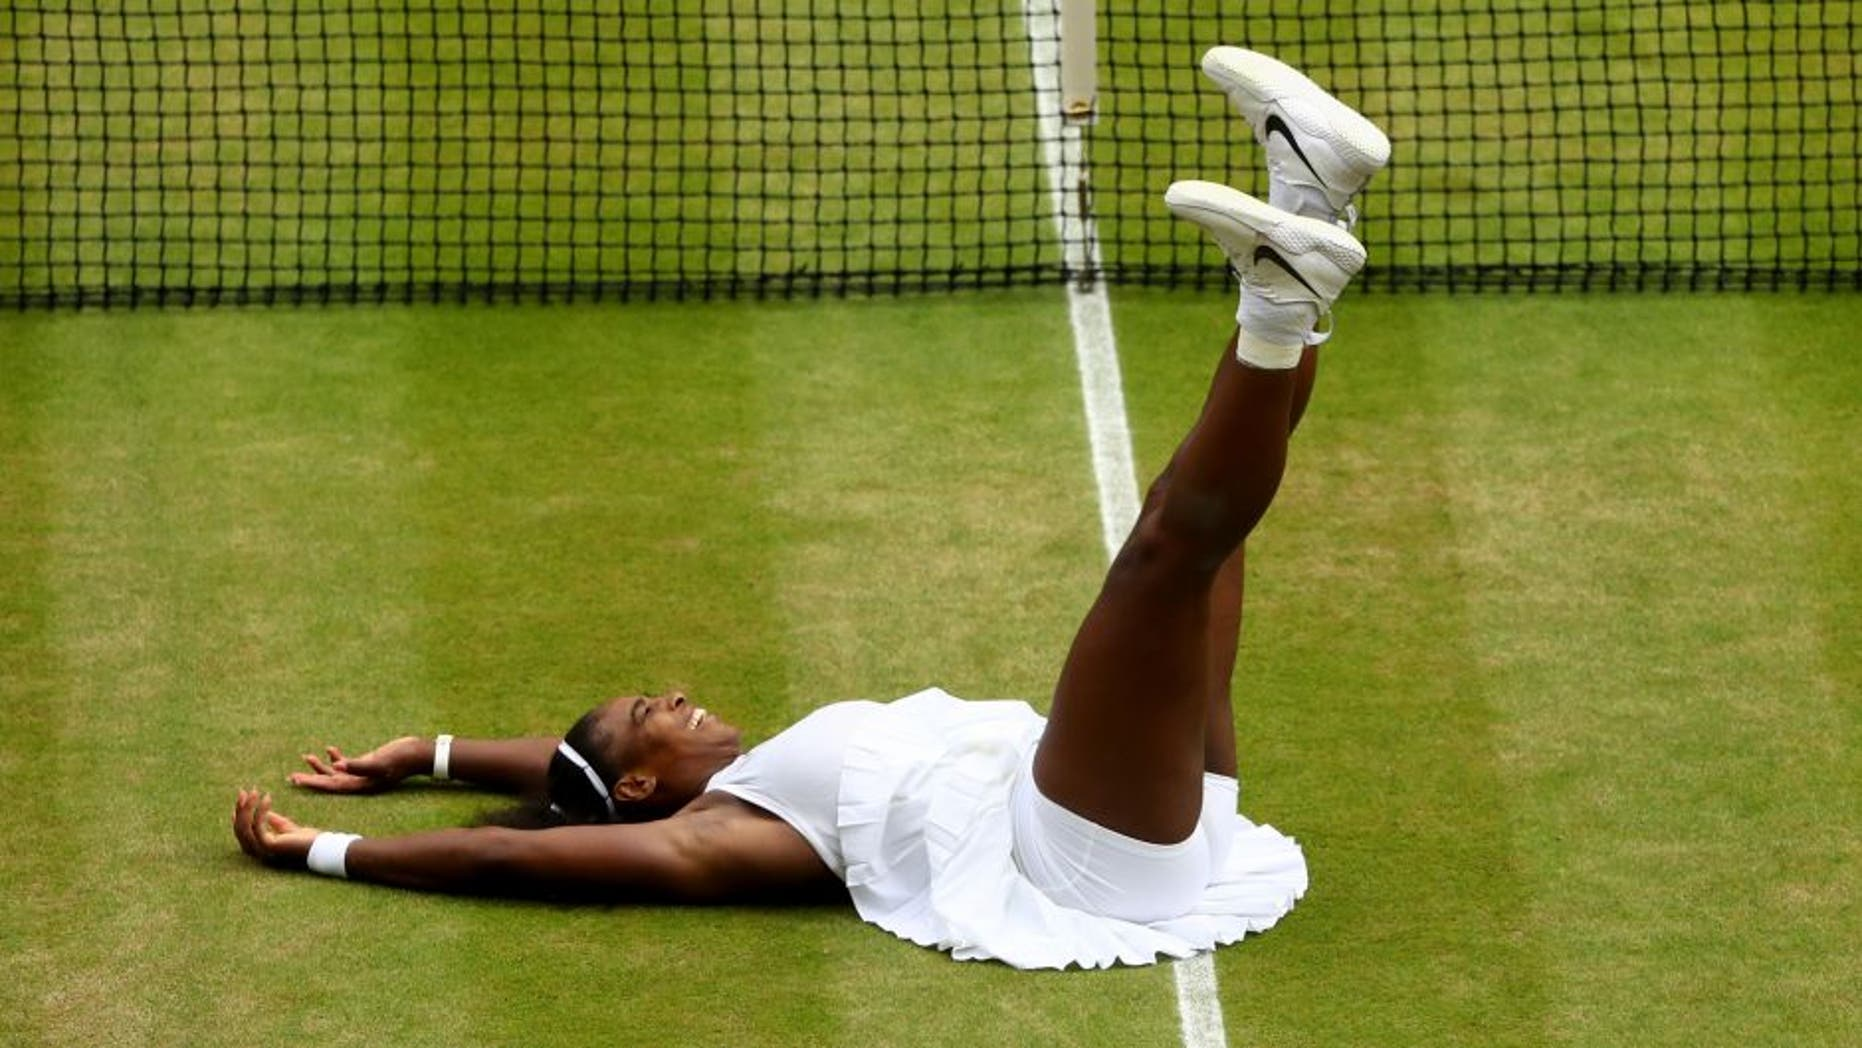 LONDON, ENGLAND - JULY 09: Serena Williams of The United States celebrates victory following The Ladies Singles Final against Angelique Kerber of Germany on day twelve of the Wimbledon Lawn Tennis Championships at the All England Lawn Tennis and Croquet Club on July 9, 2016 in London, England. (Photo by Julian Finney/Getty Images)